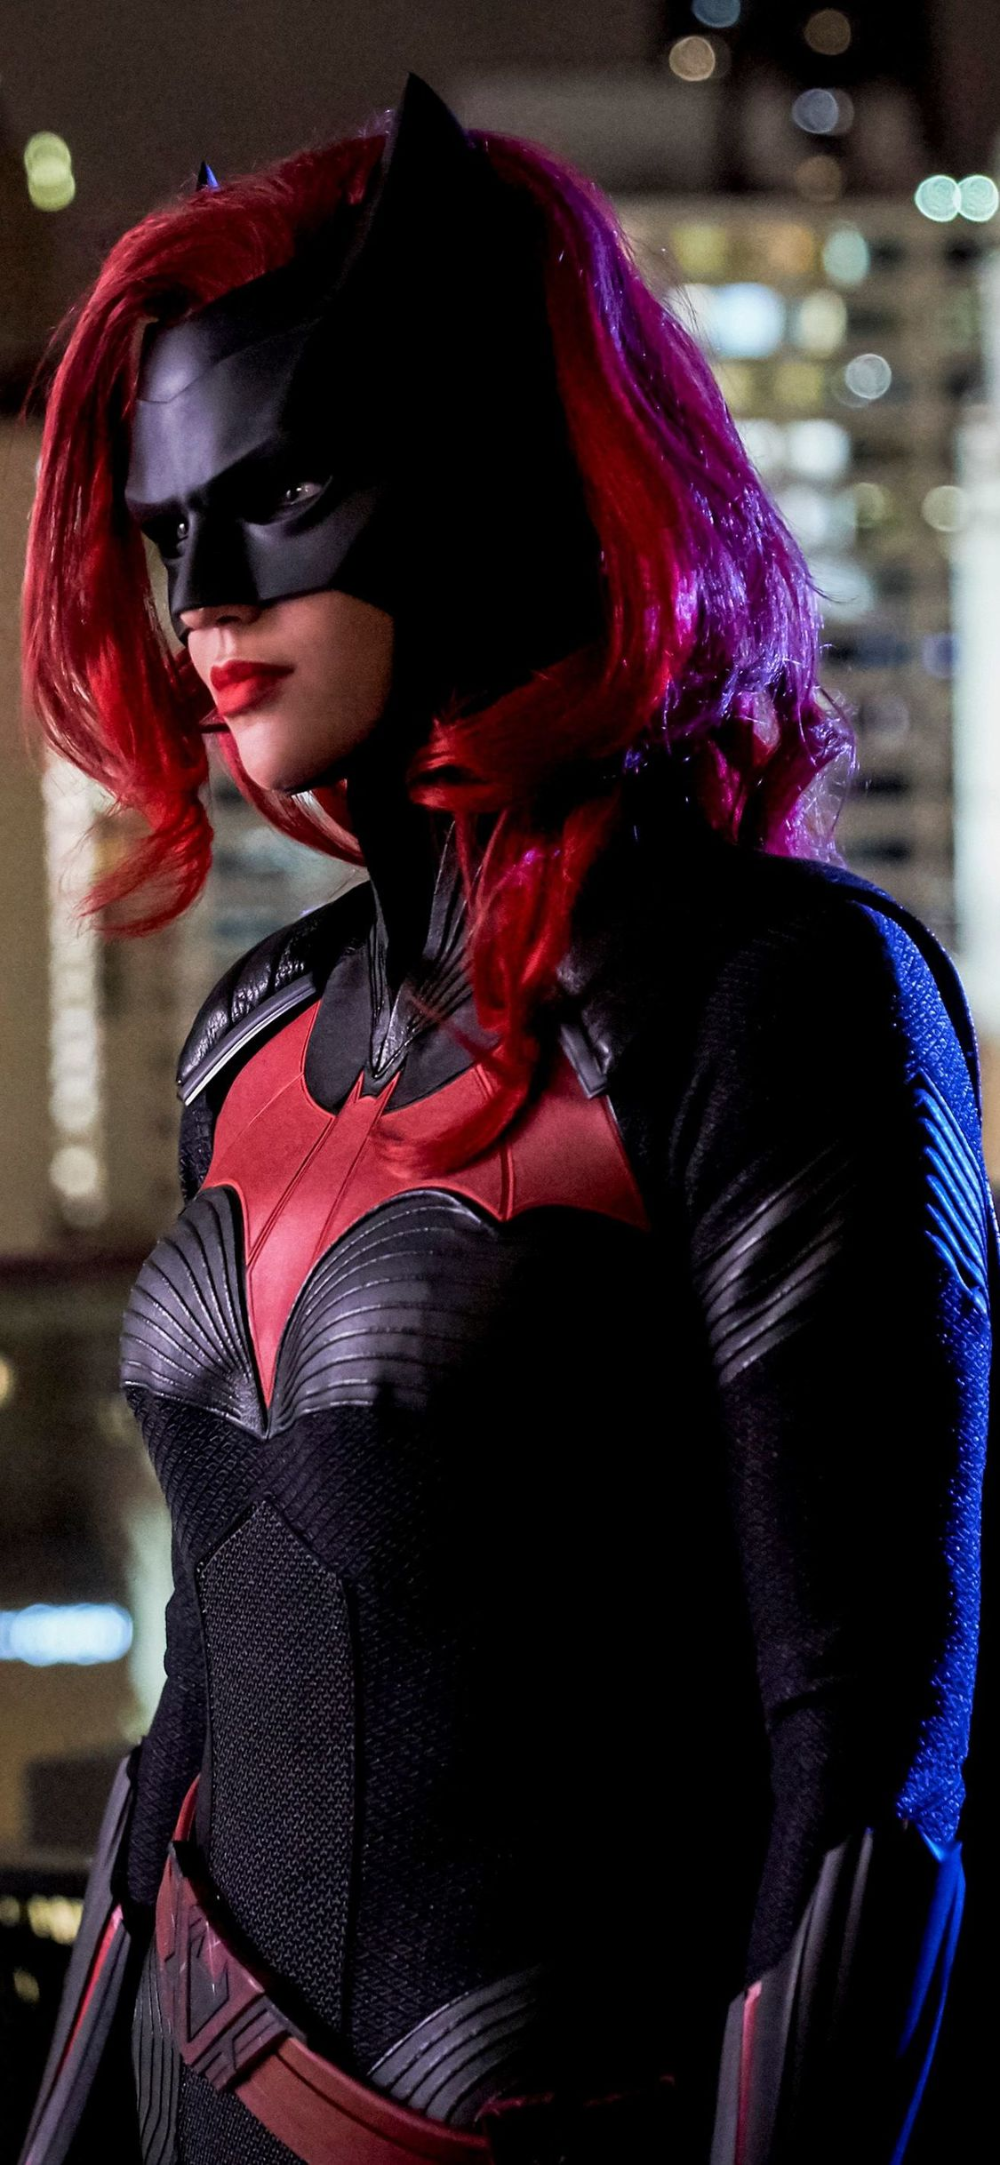 Pin by Remi on Batwoman in 2020 Batwoman, Ruby rose